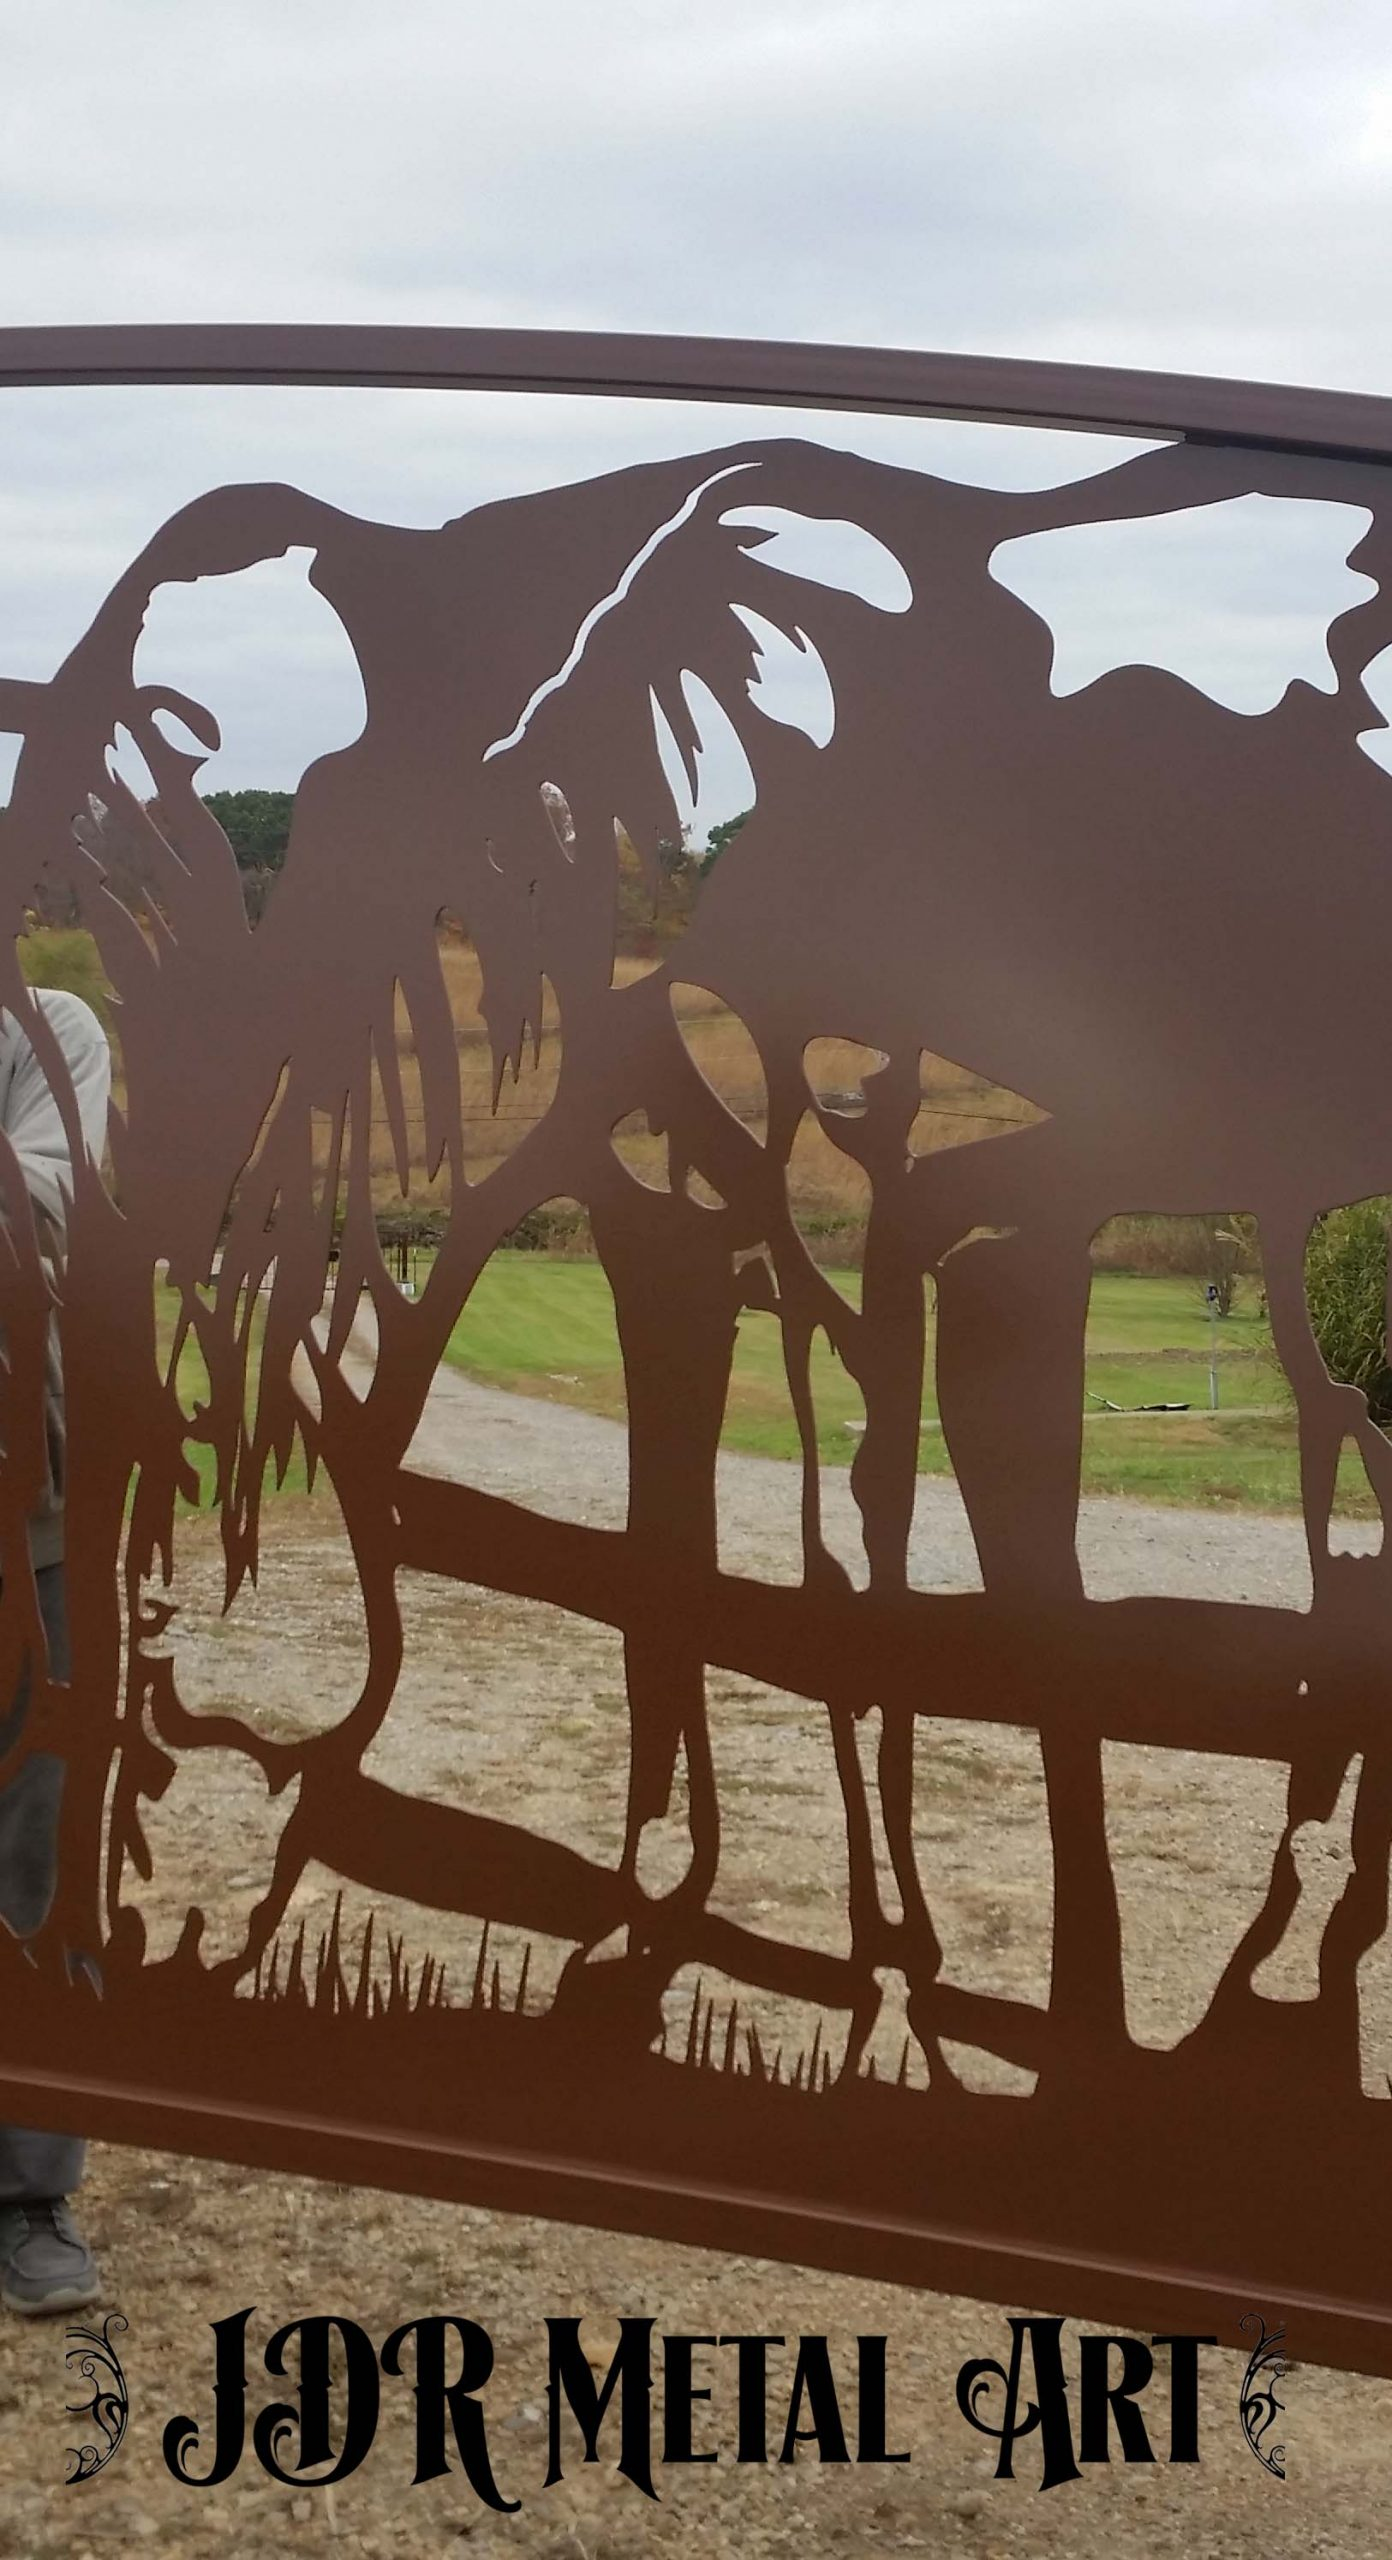 Horse design for TX ranch gate by JDR MEtal Art April 2020 scaled